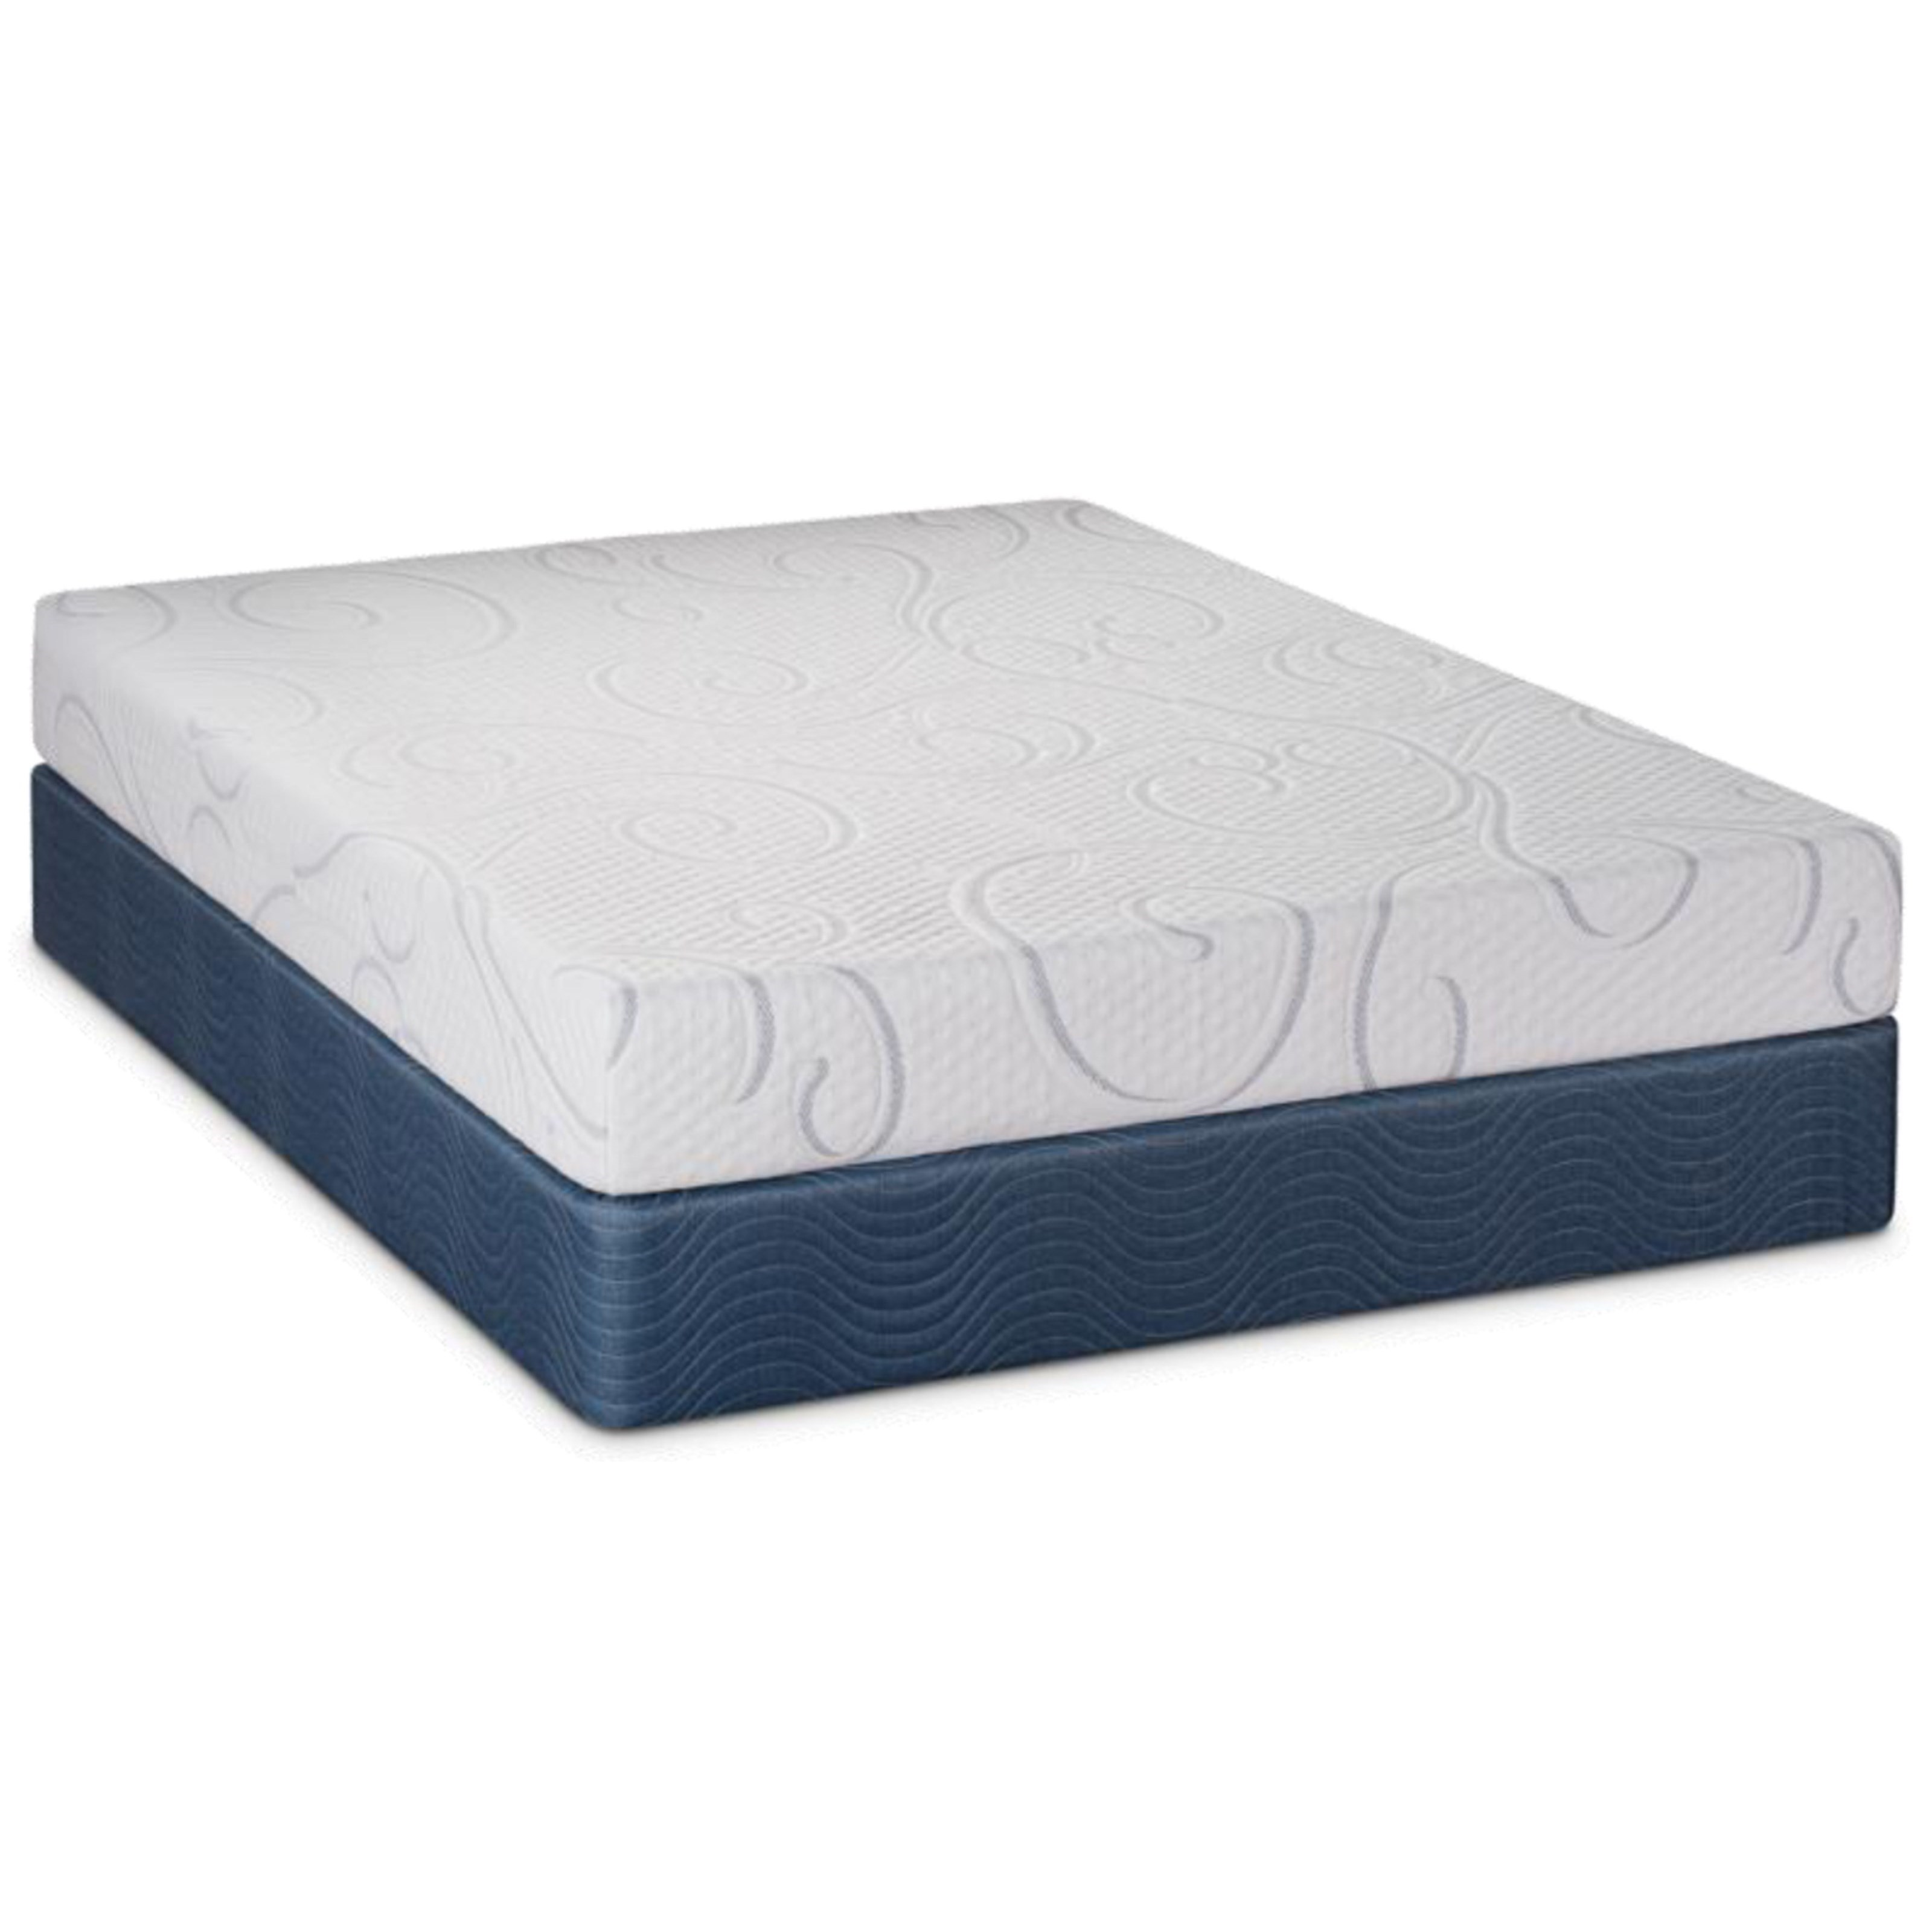 "Queen 8"" Gel Memory Foam Low Pro Set"